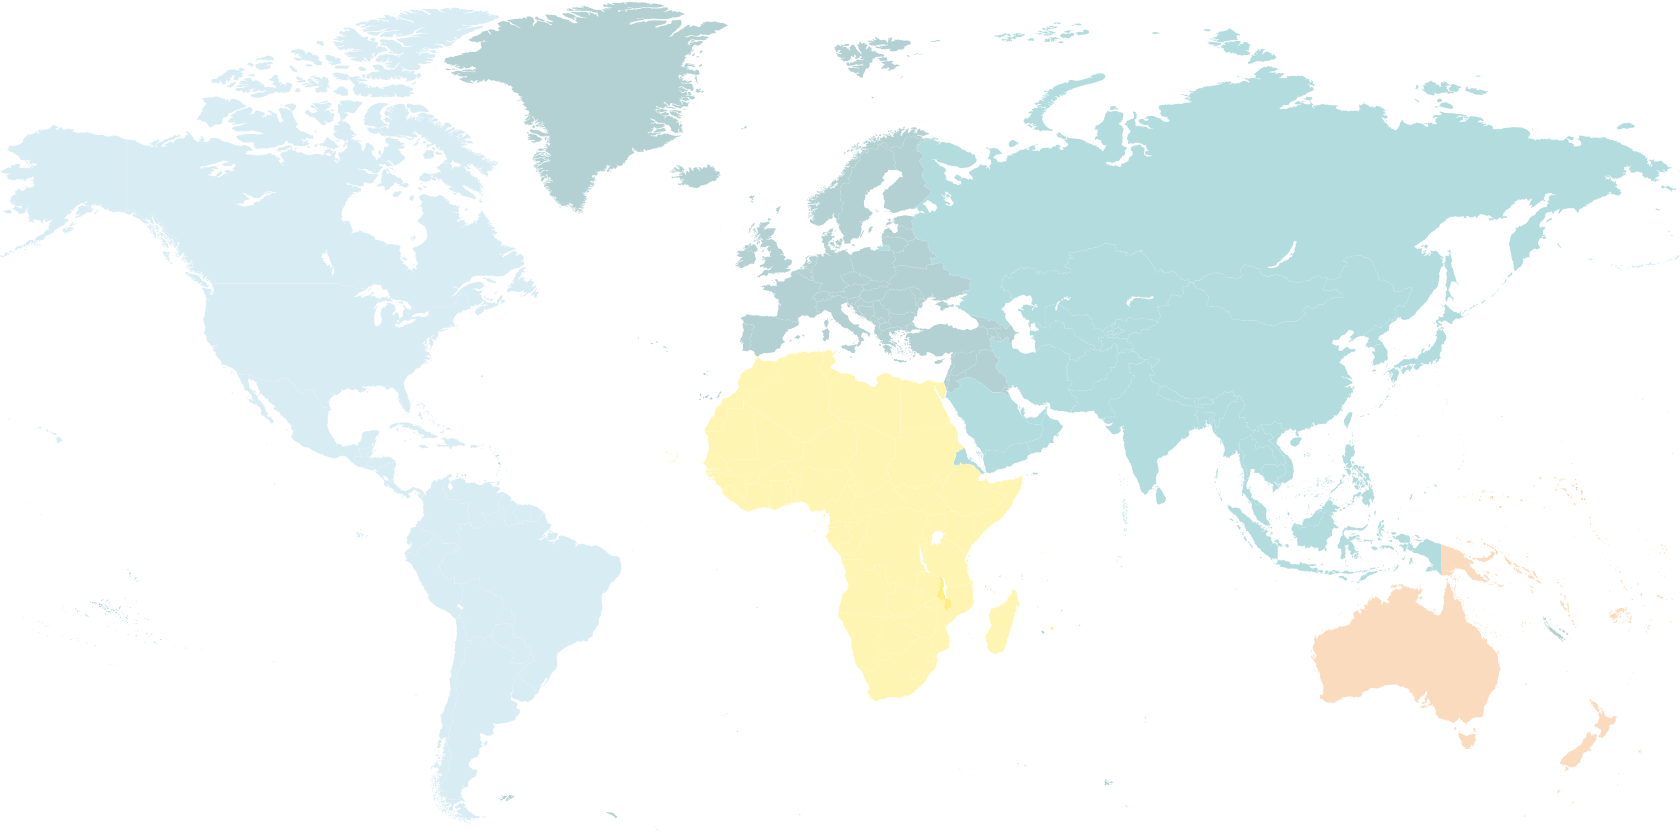 countries_map.png